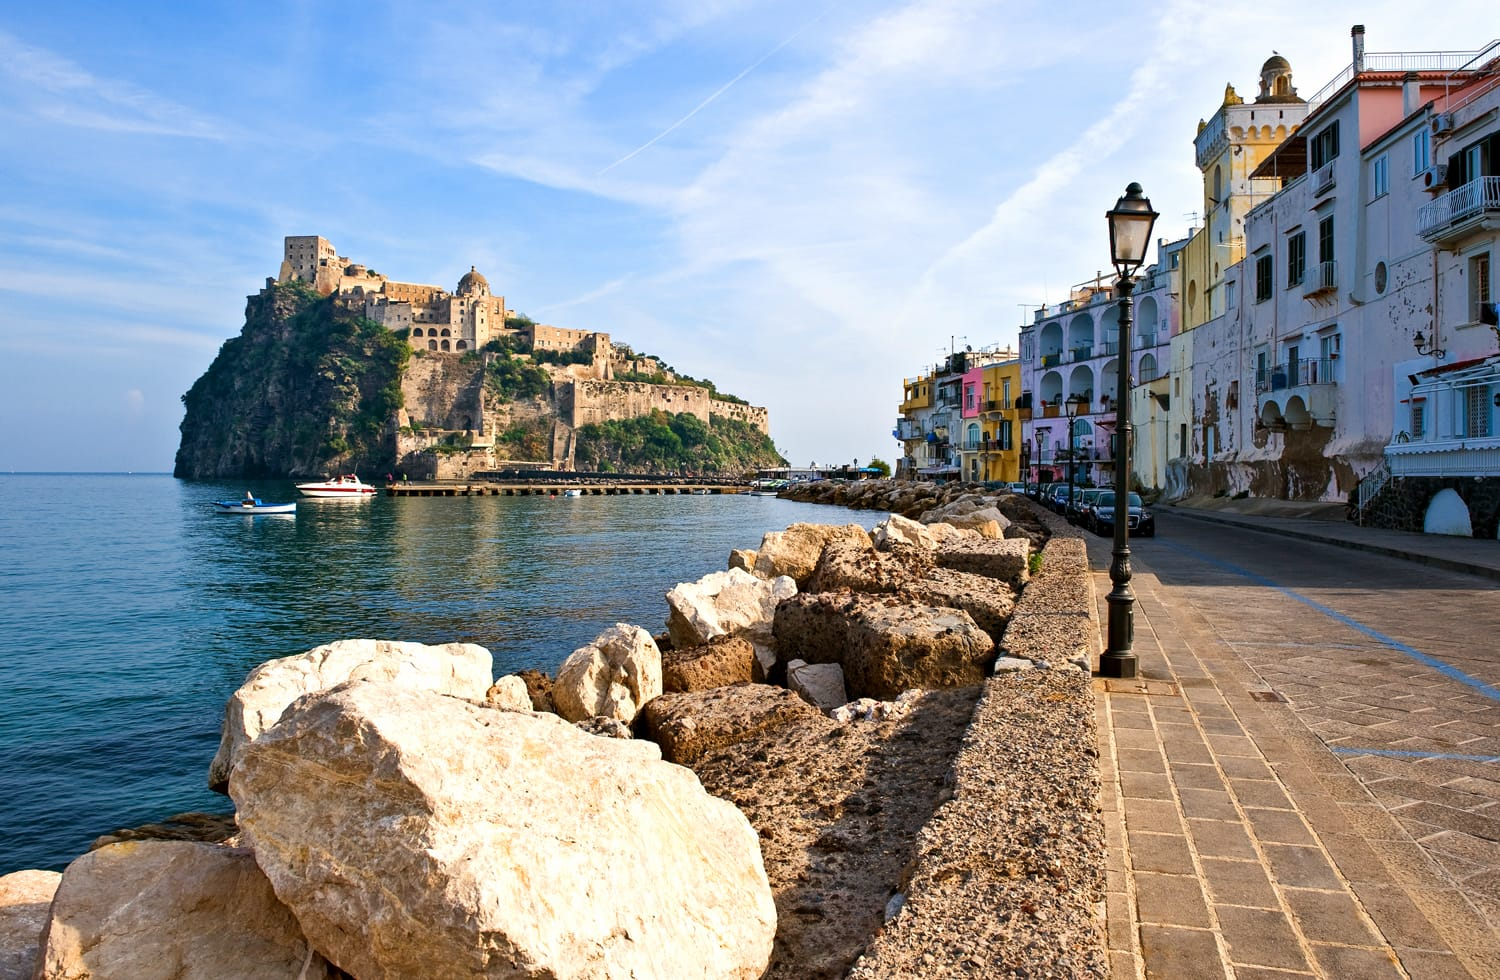 Italy, Ischia, the Aragonese Castle seen from Ischia Ponte